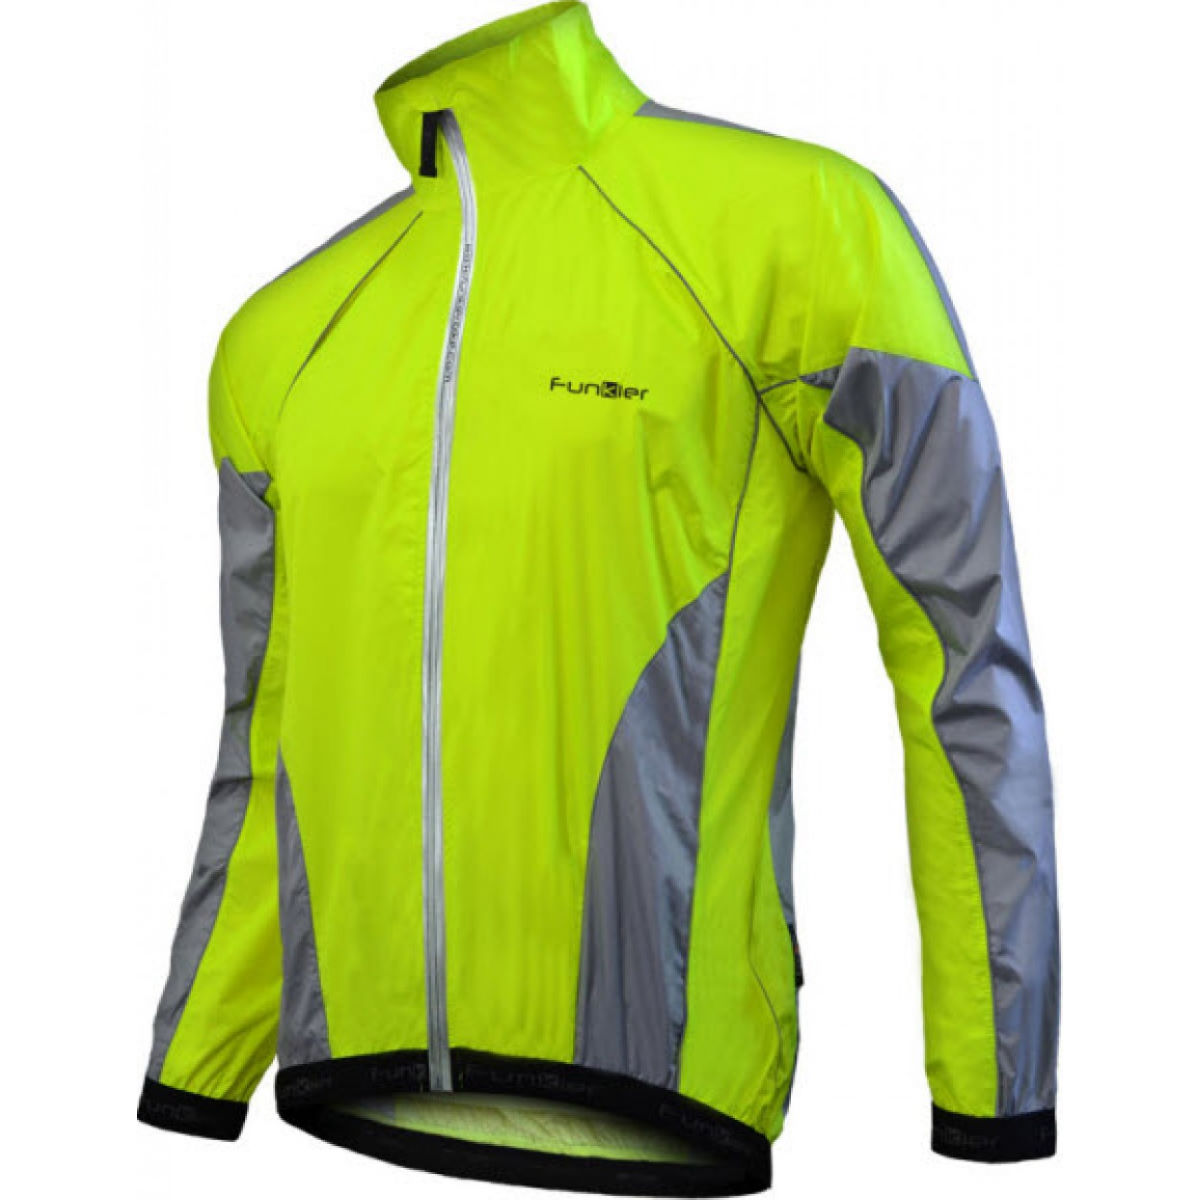 Funkier Lightweight Jacket - Impermeables - ciclismo